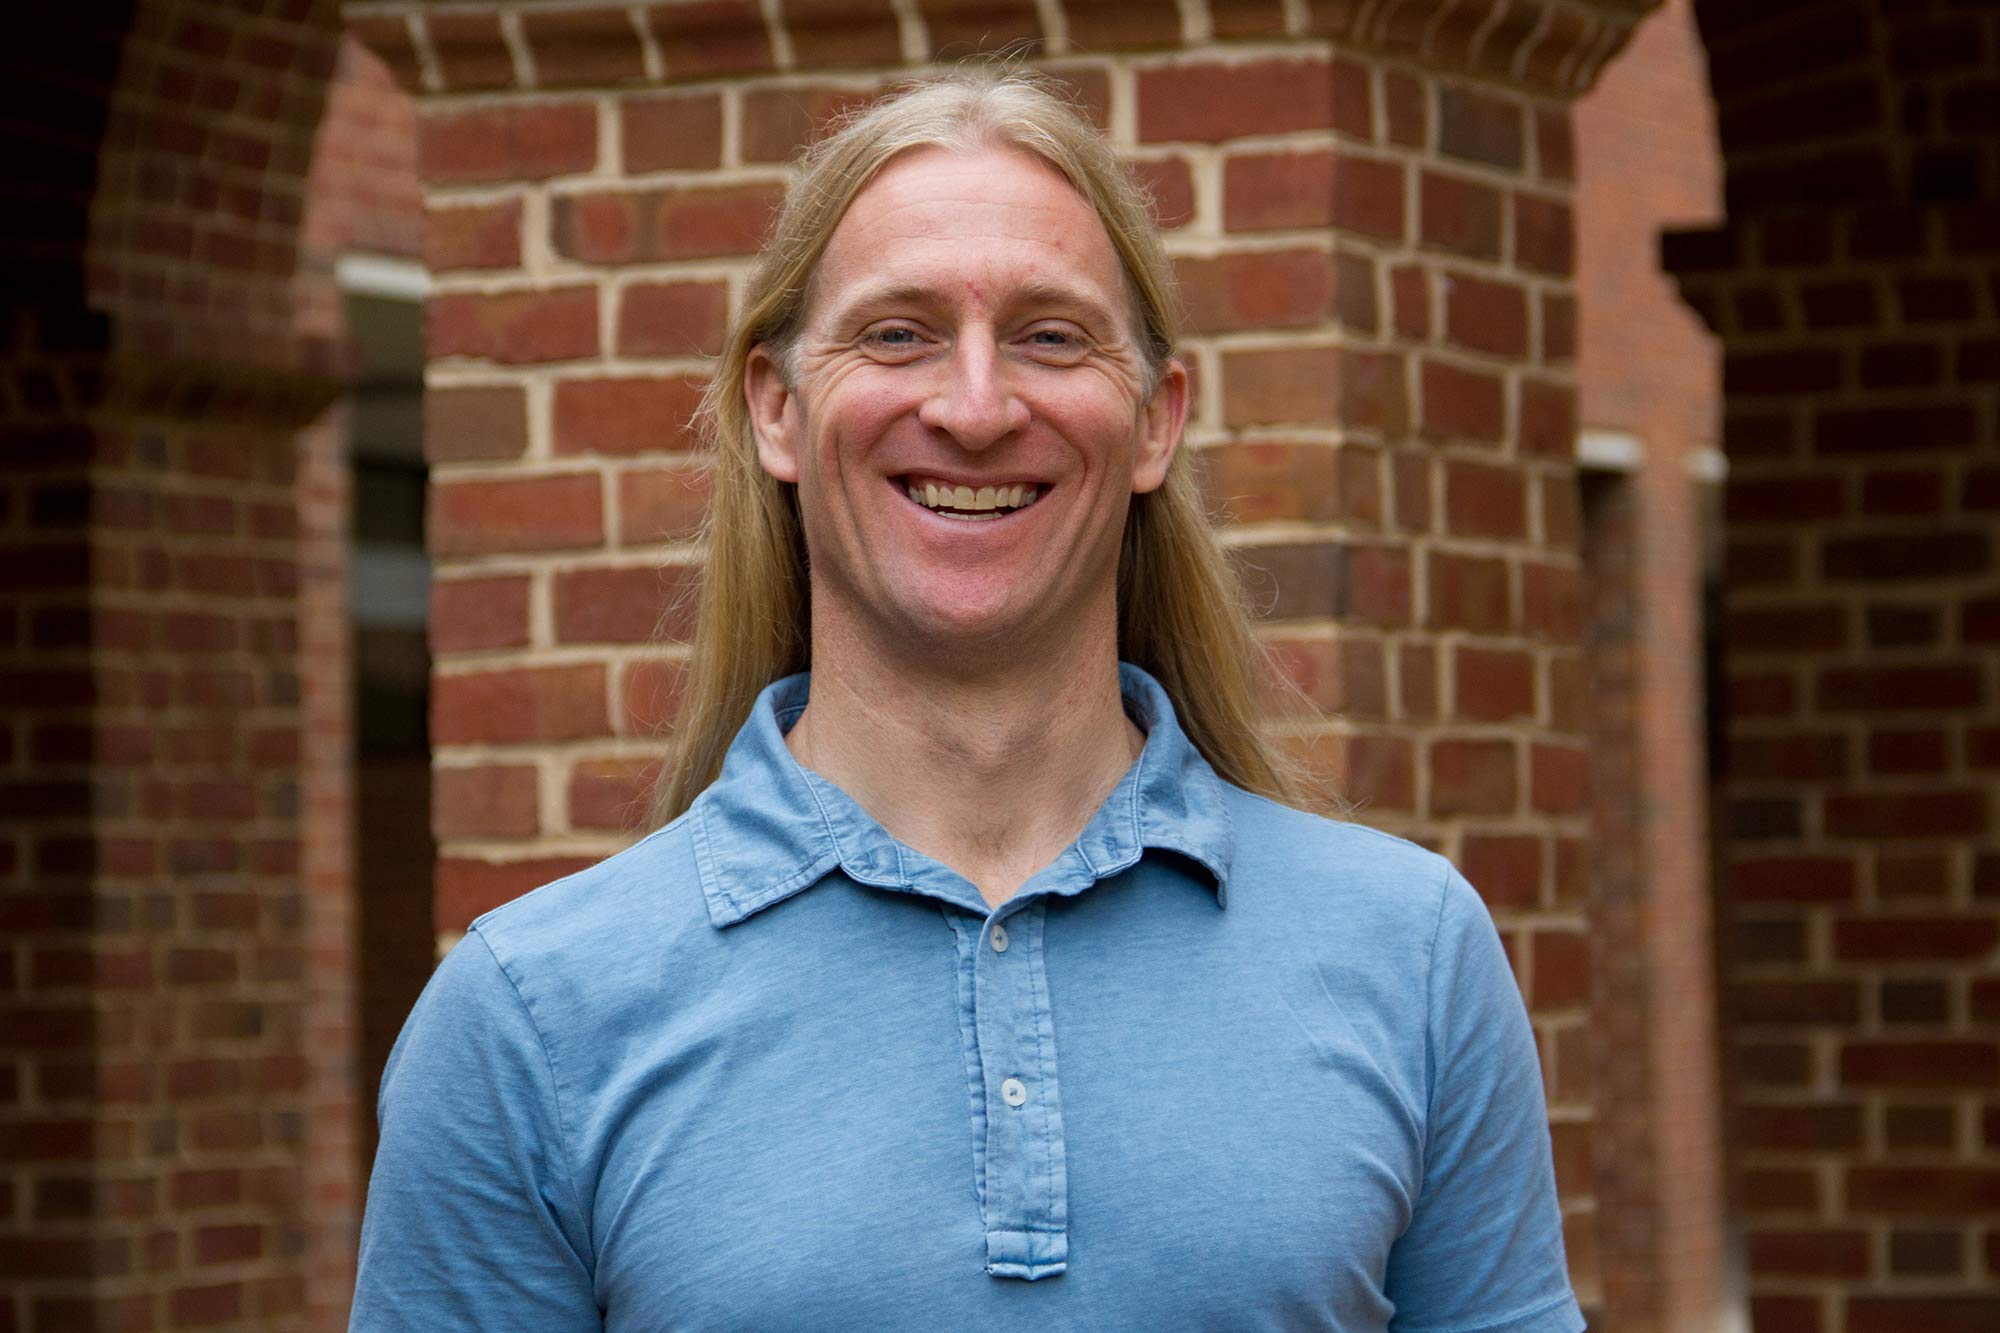 Chris Hulleman, a research associate professor at UVA's Curry School of Education, was a lead researcher of the study.